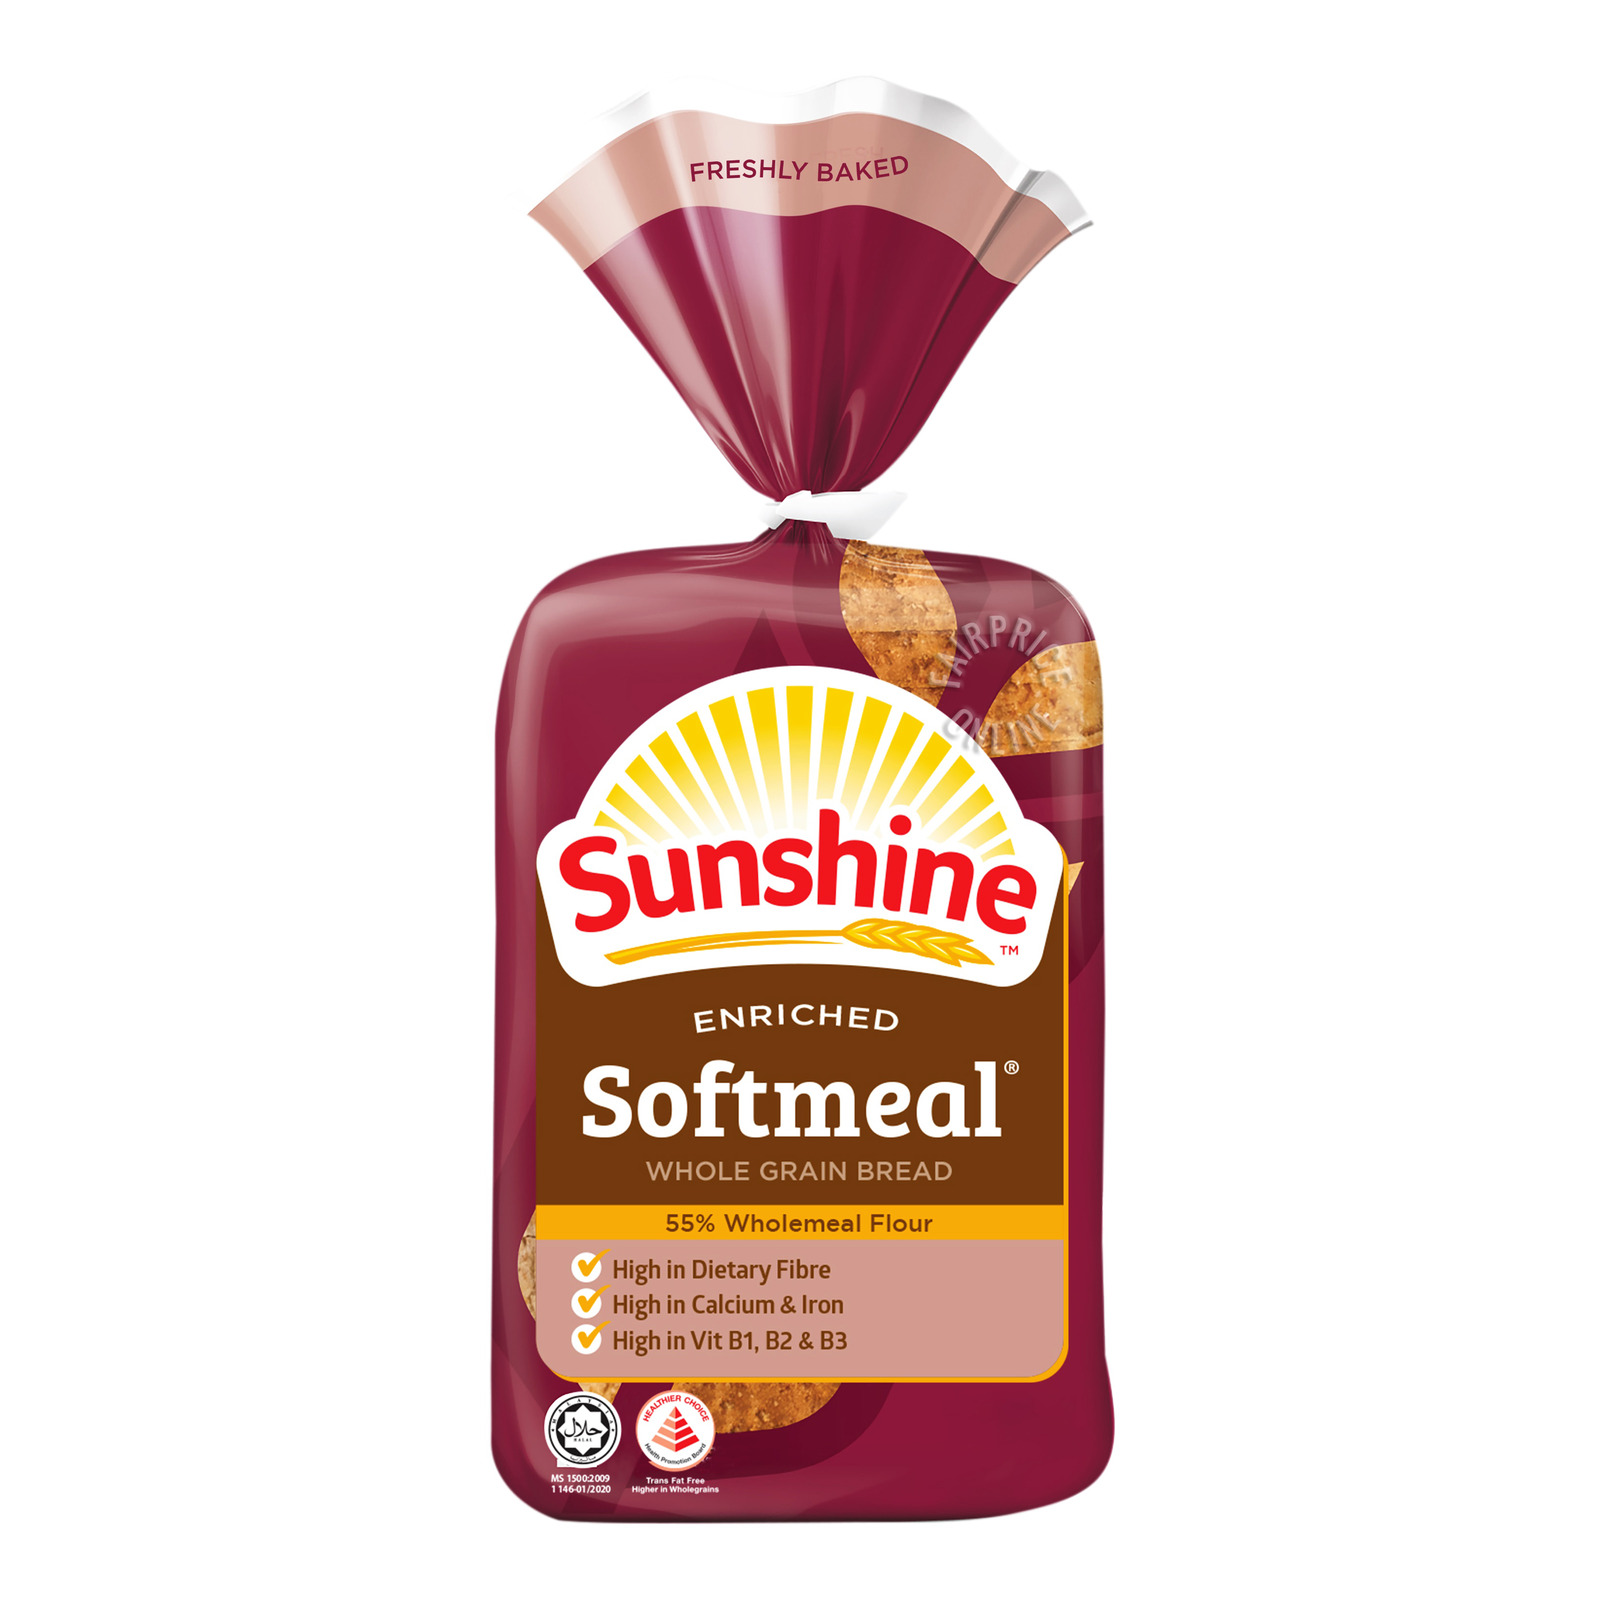 Sunshine Enriched Bread - Softmeal